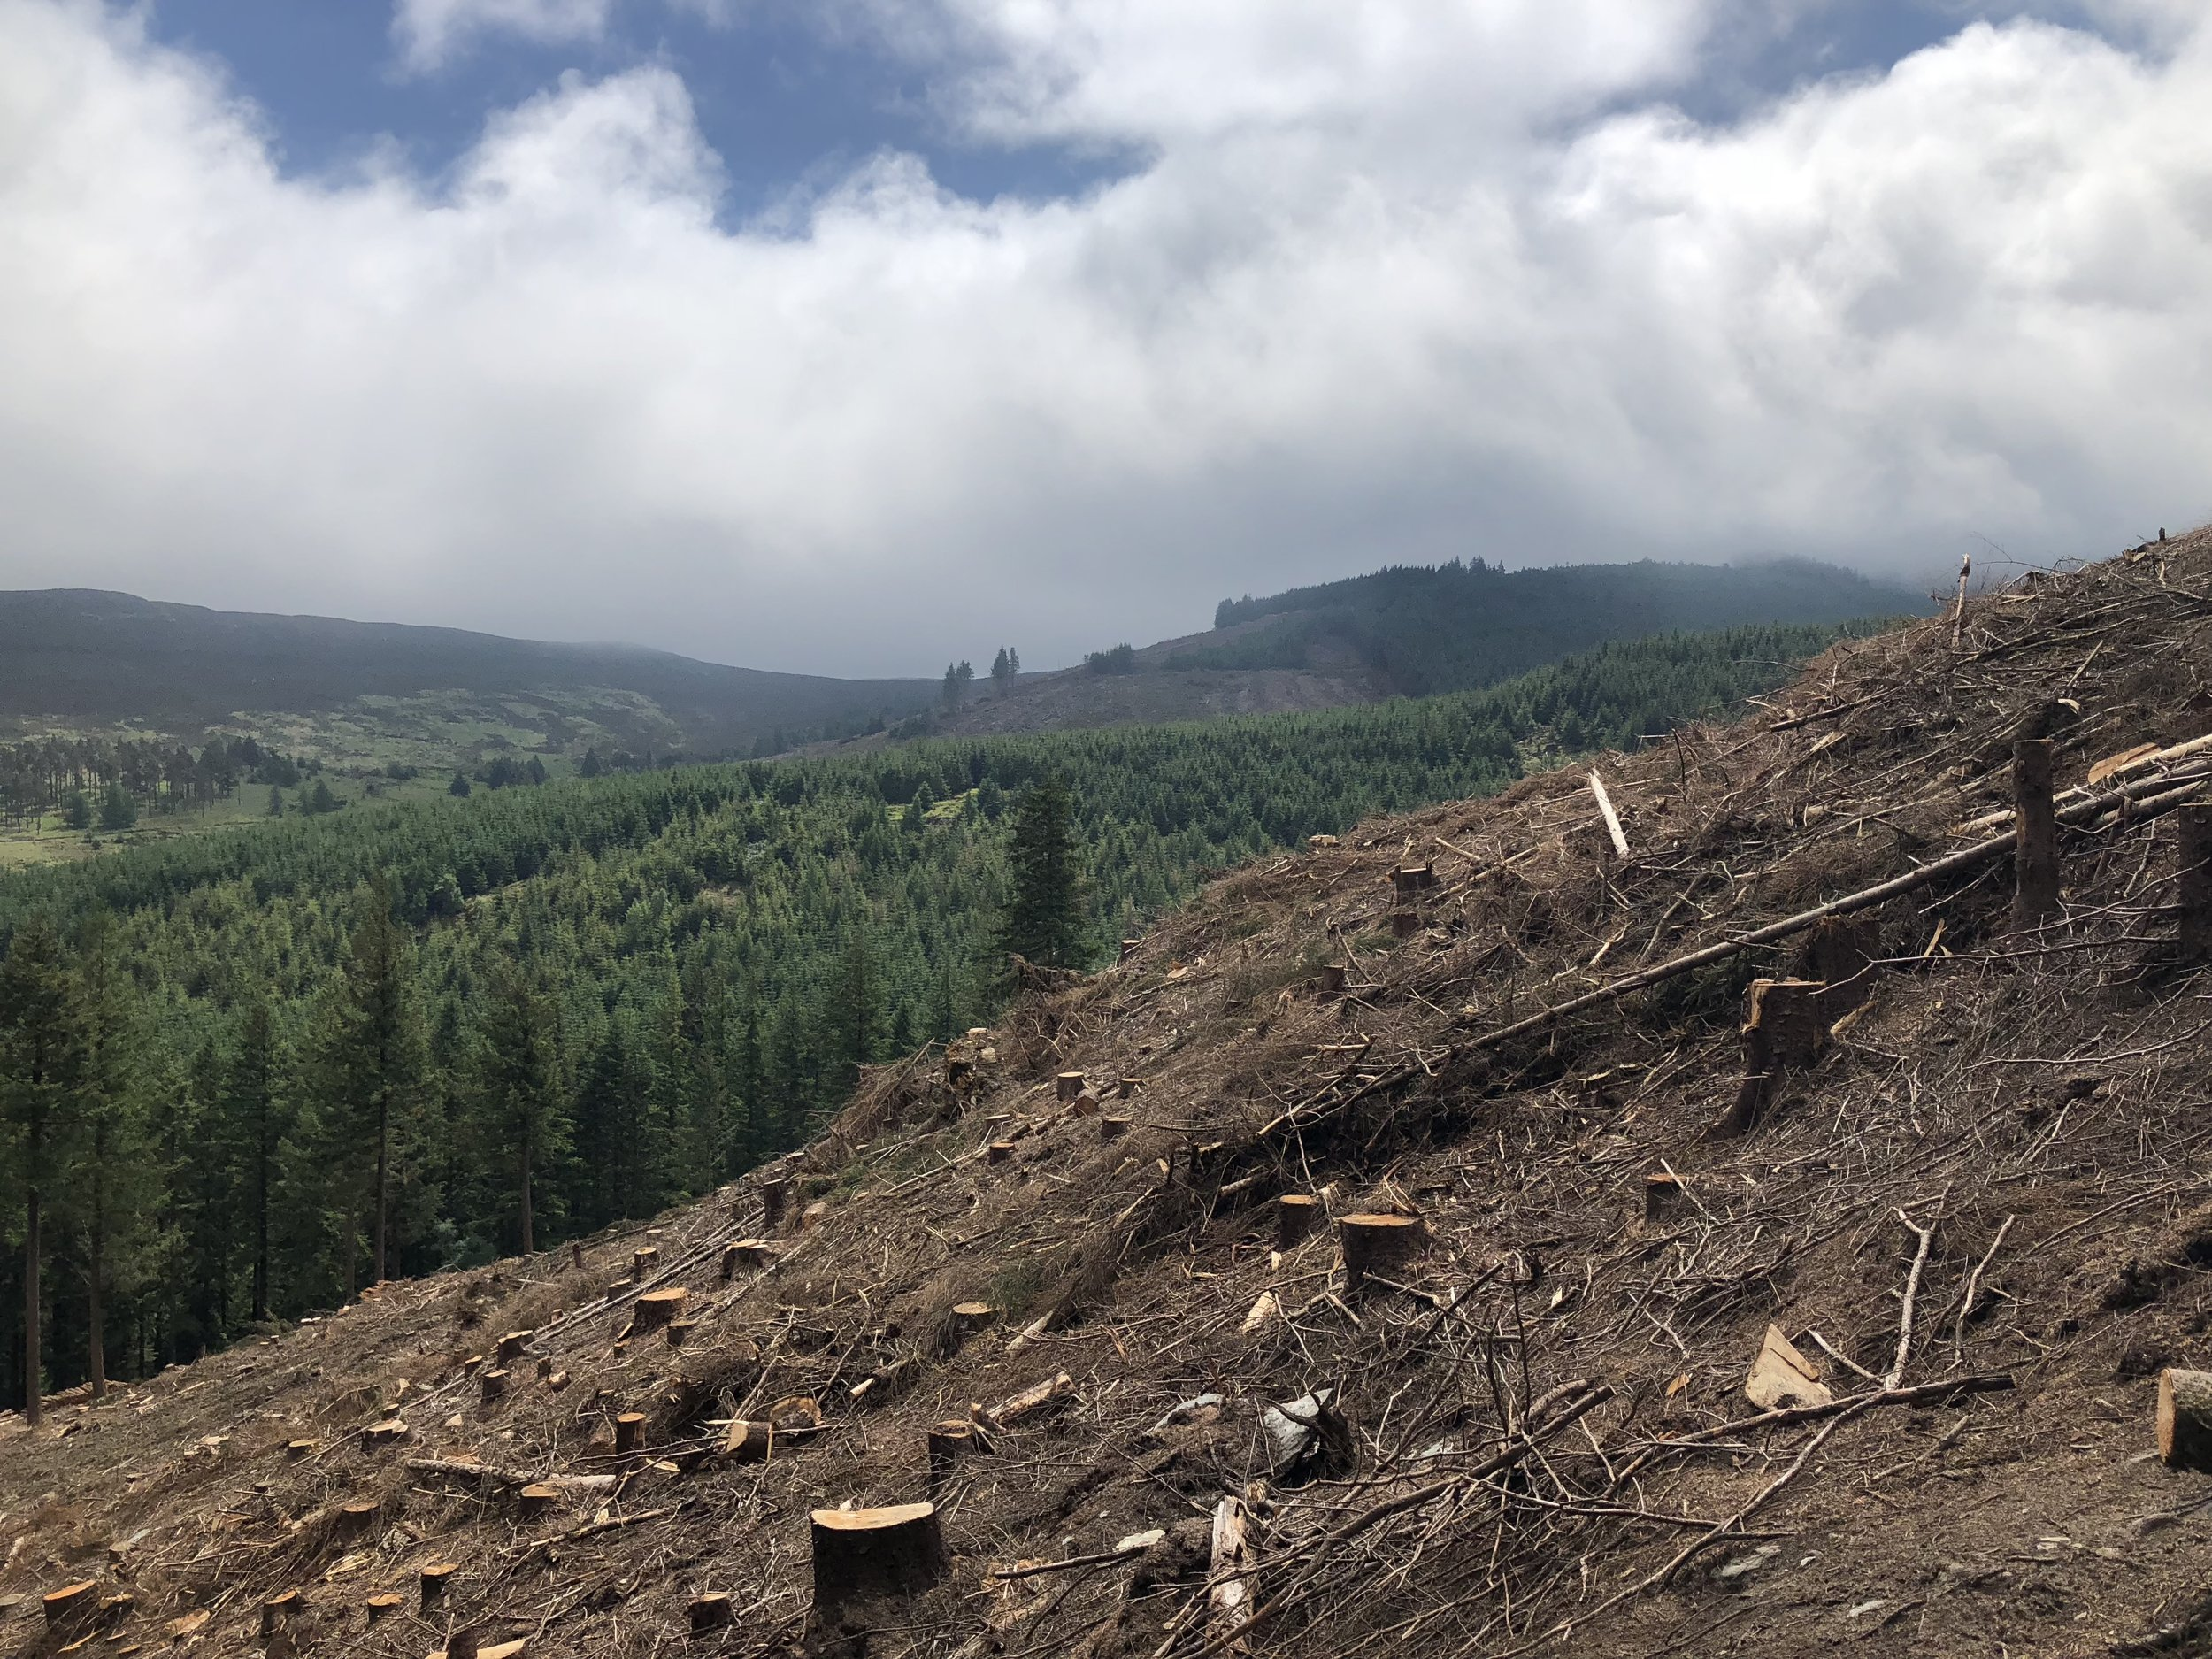 It was sad to see so many trees cleared.